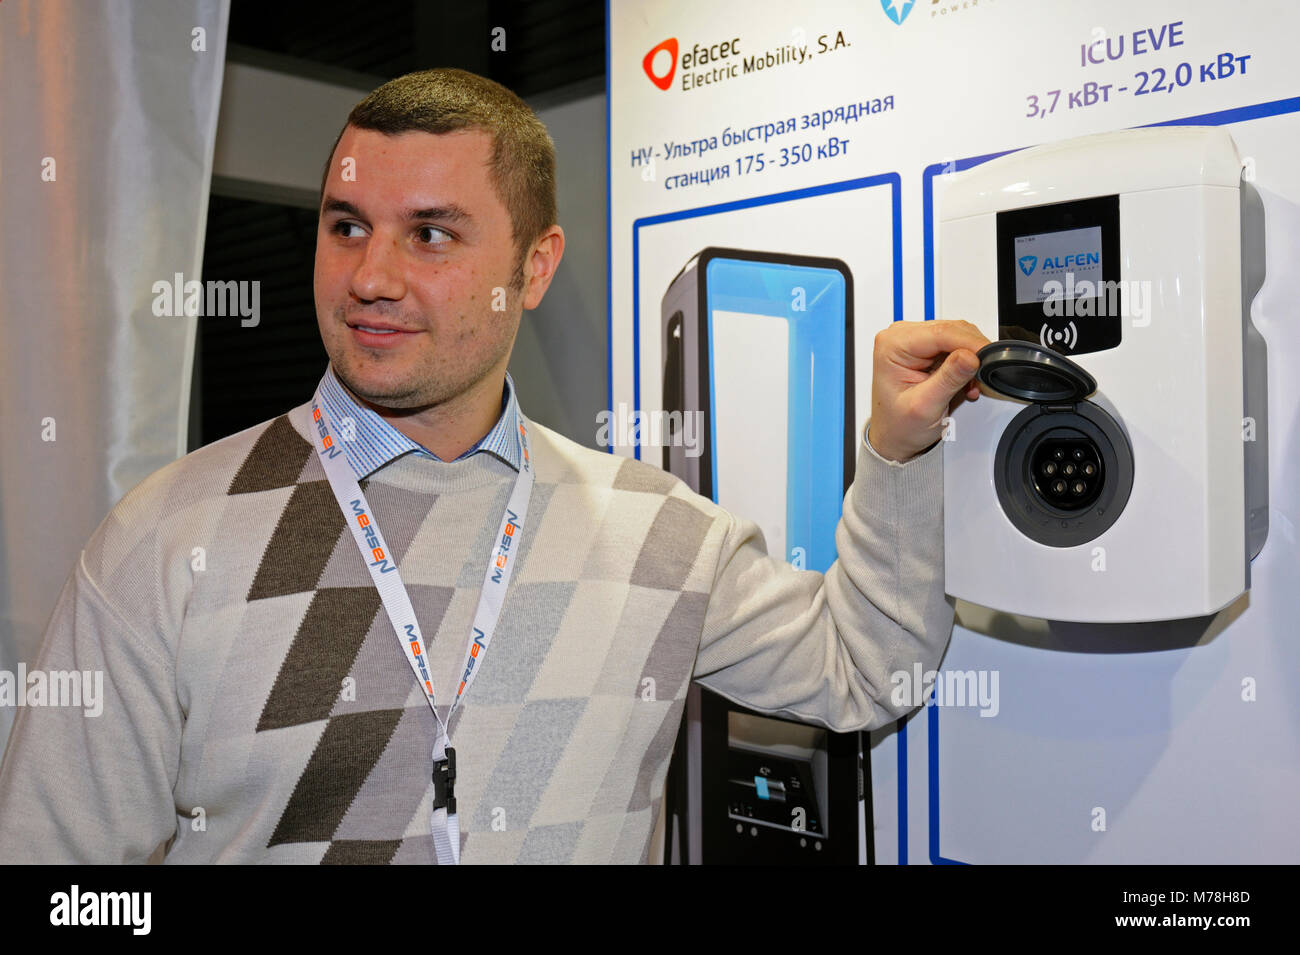 New ICU Eve charging stations demonstrated during exhibition PLUG-IN UKRAINE 2018. March 2, 2018. Kiev Expo center. - Stock Image